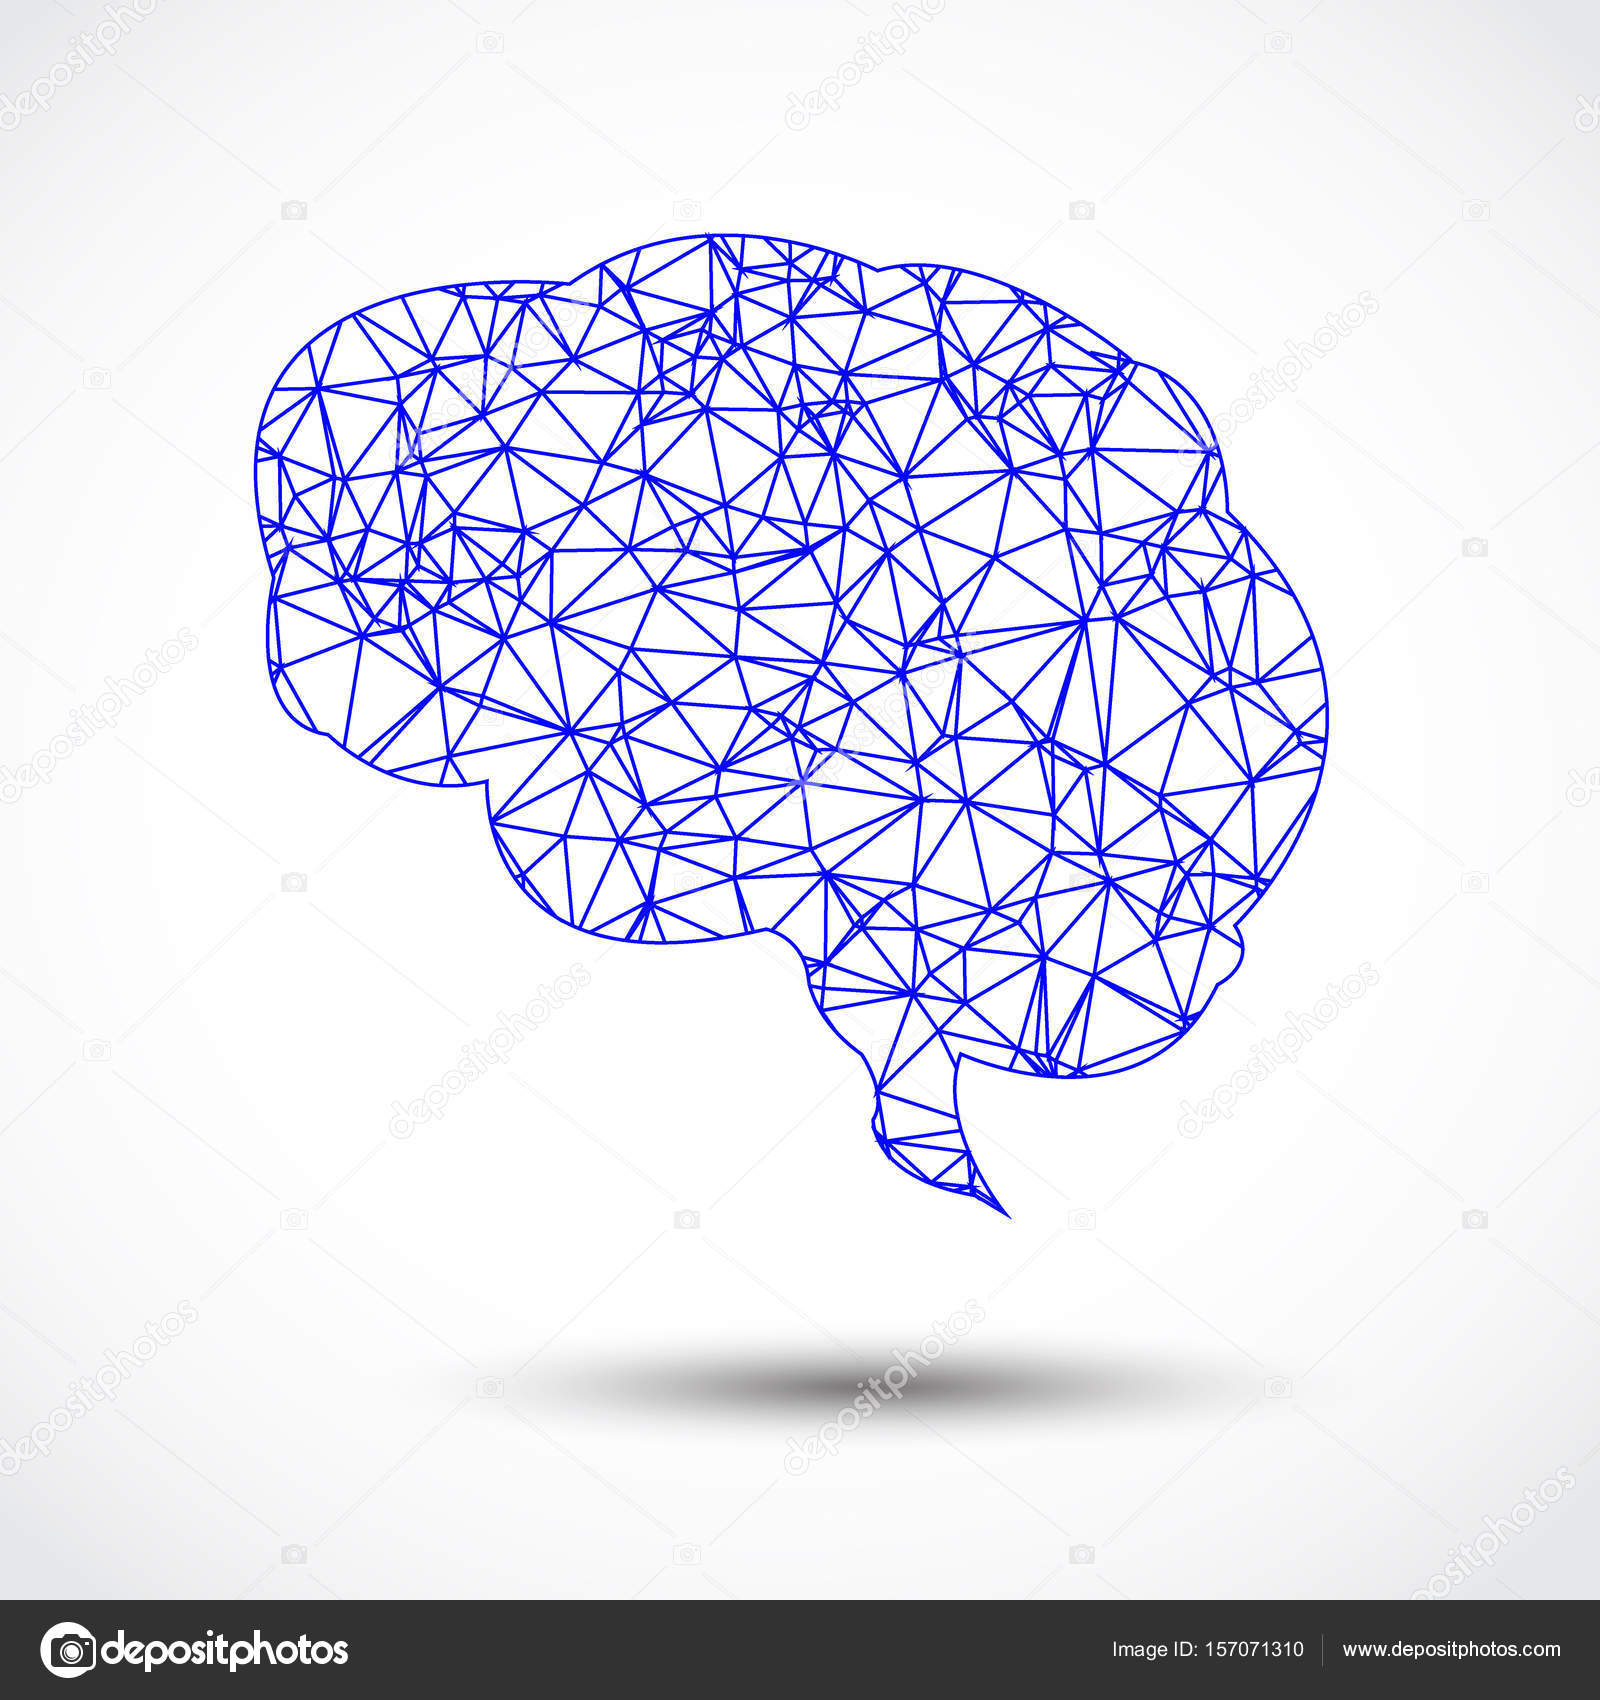 Abstract blue brain mesh on white stock vector pockygallery abstract blue brain mesh on white background vector by pockygallery ccuart Image collections